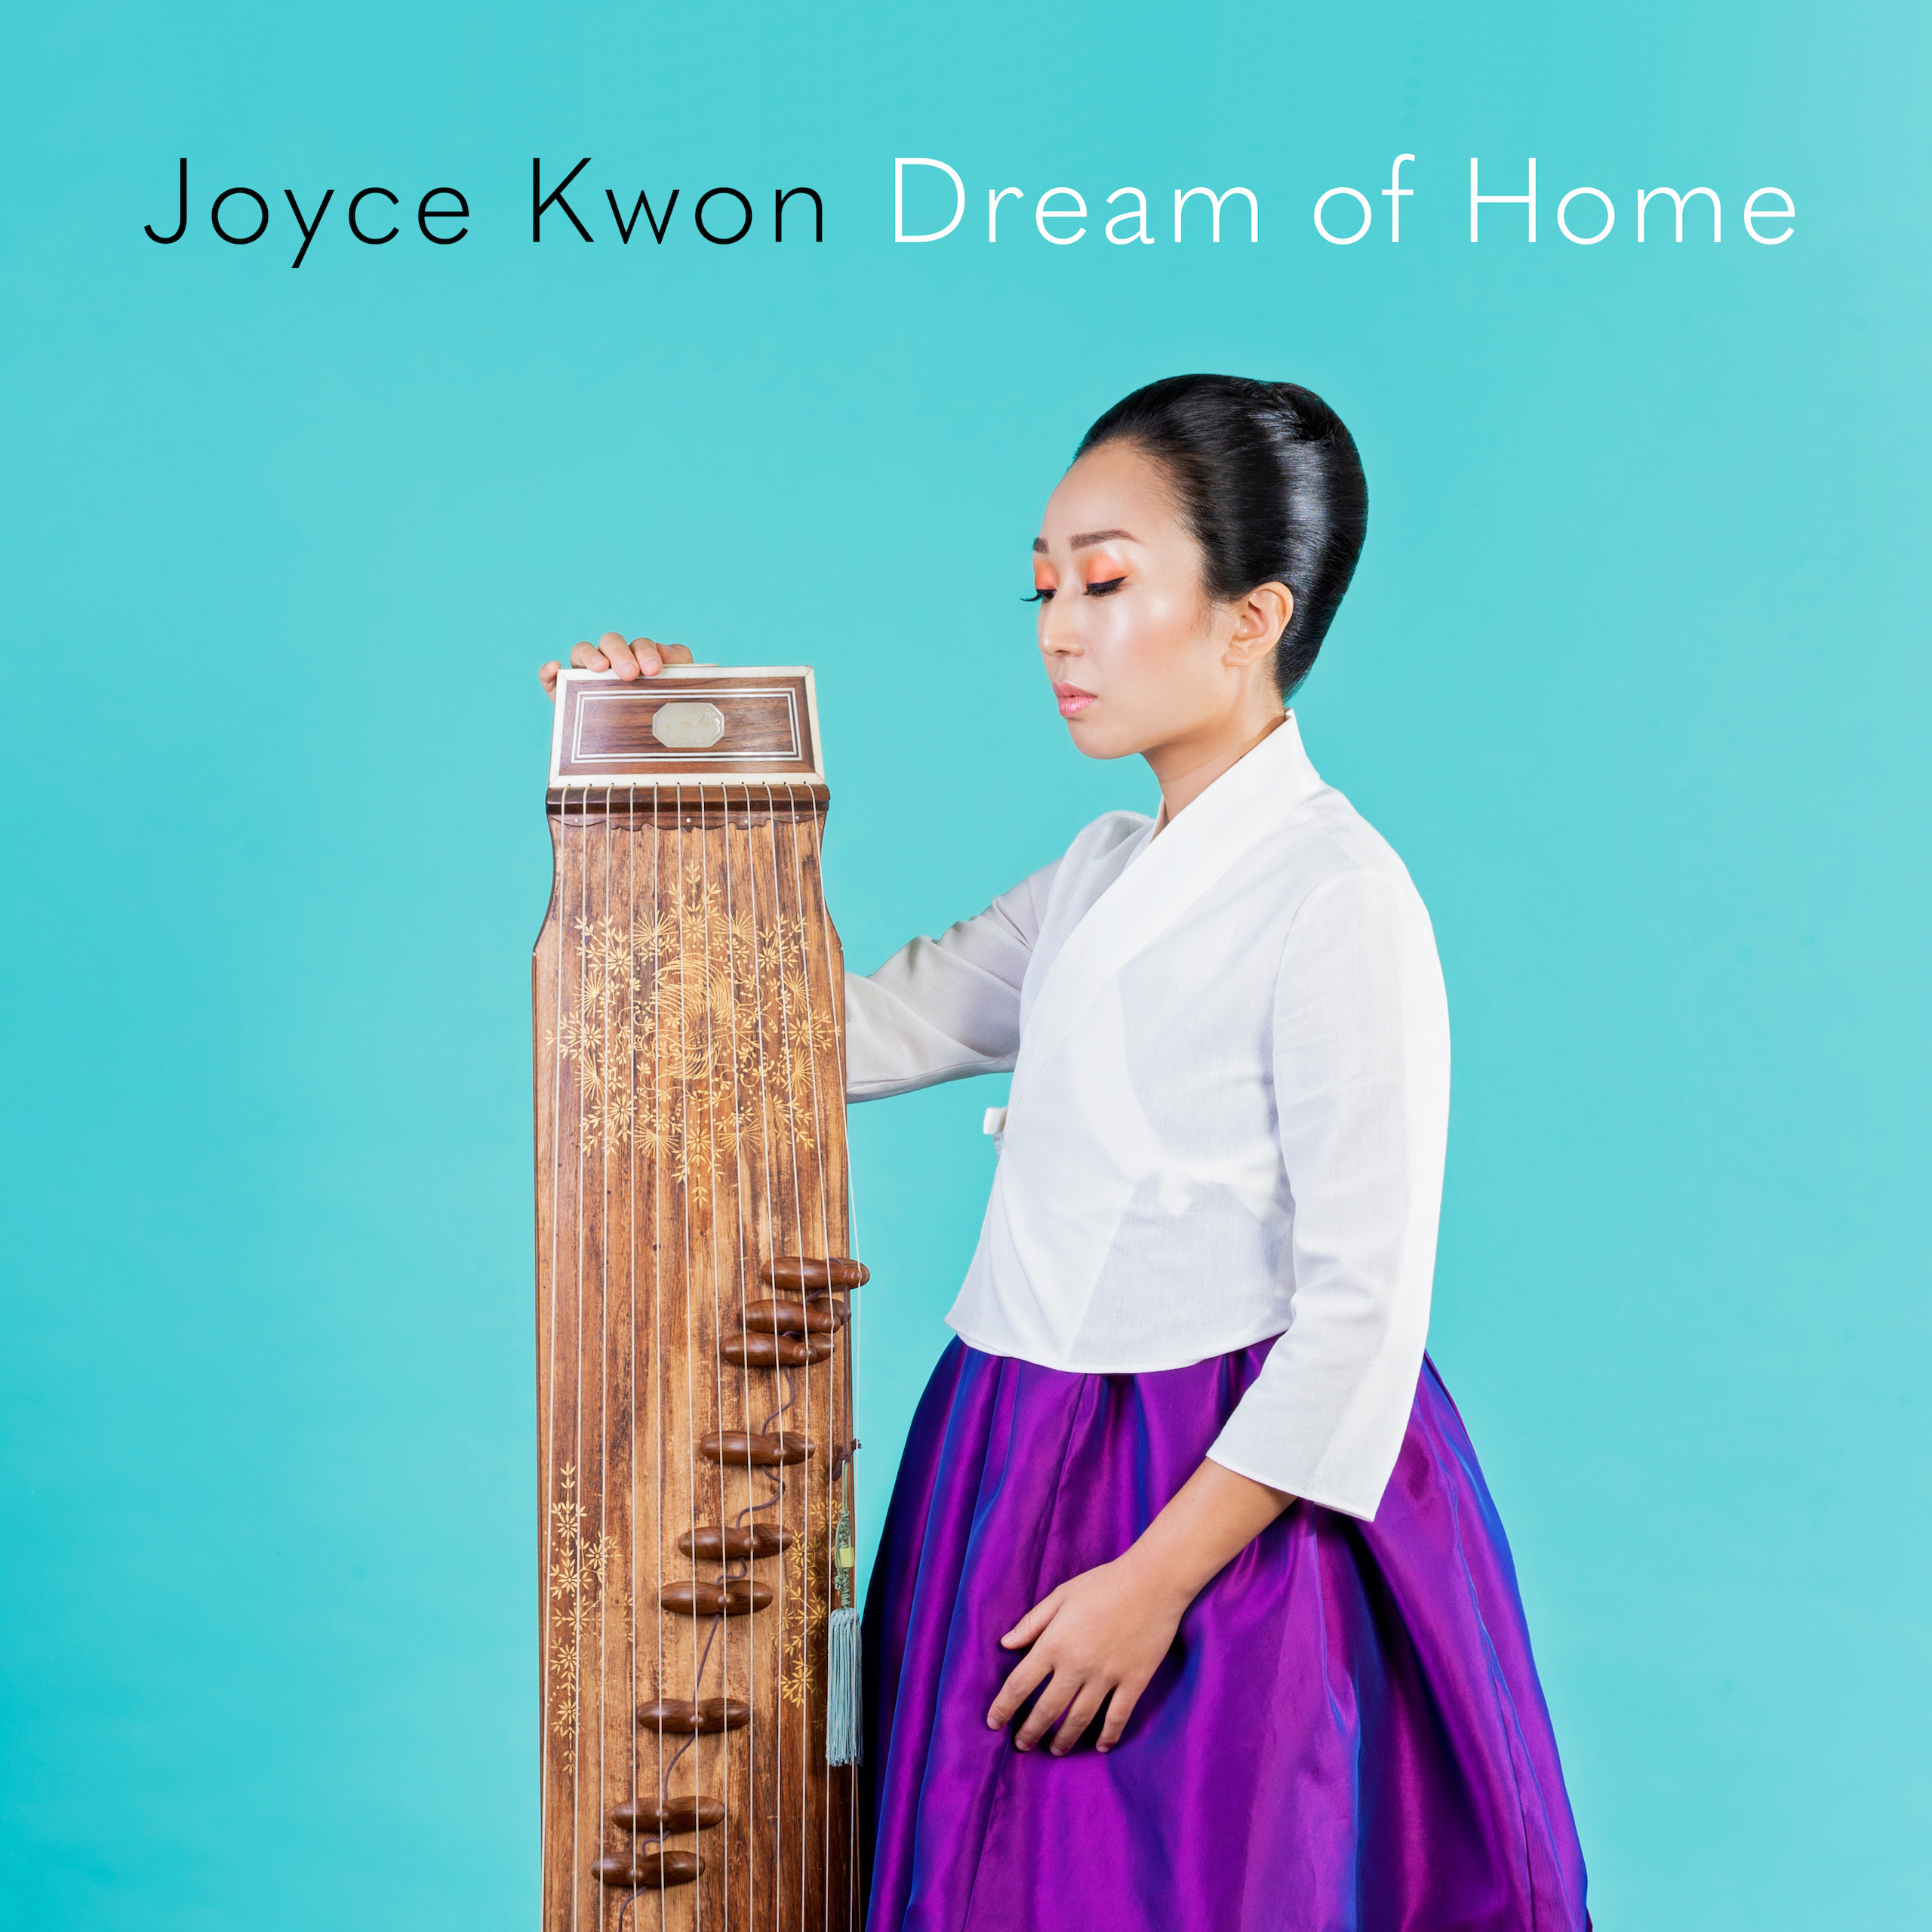 Joyce Kwon, Dream of Home album cover